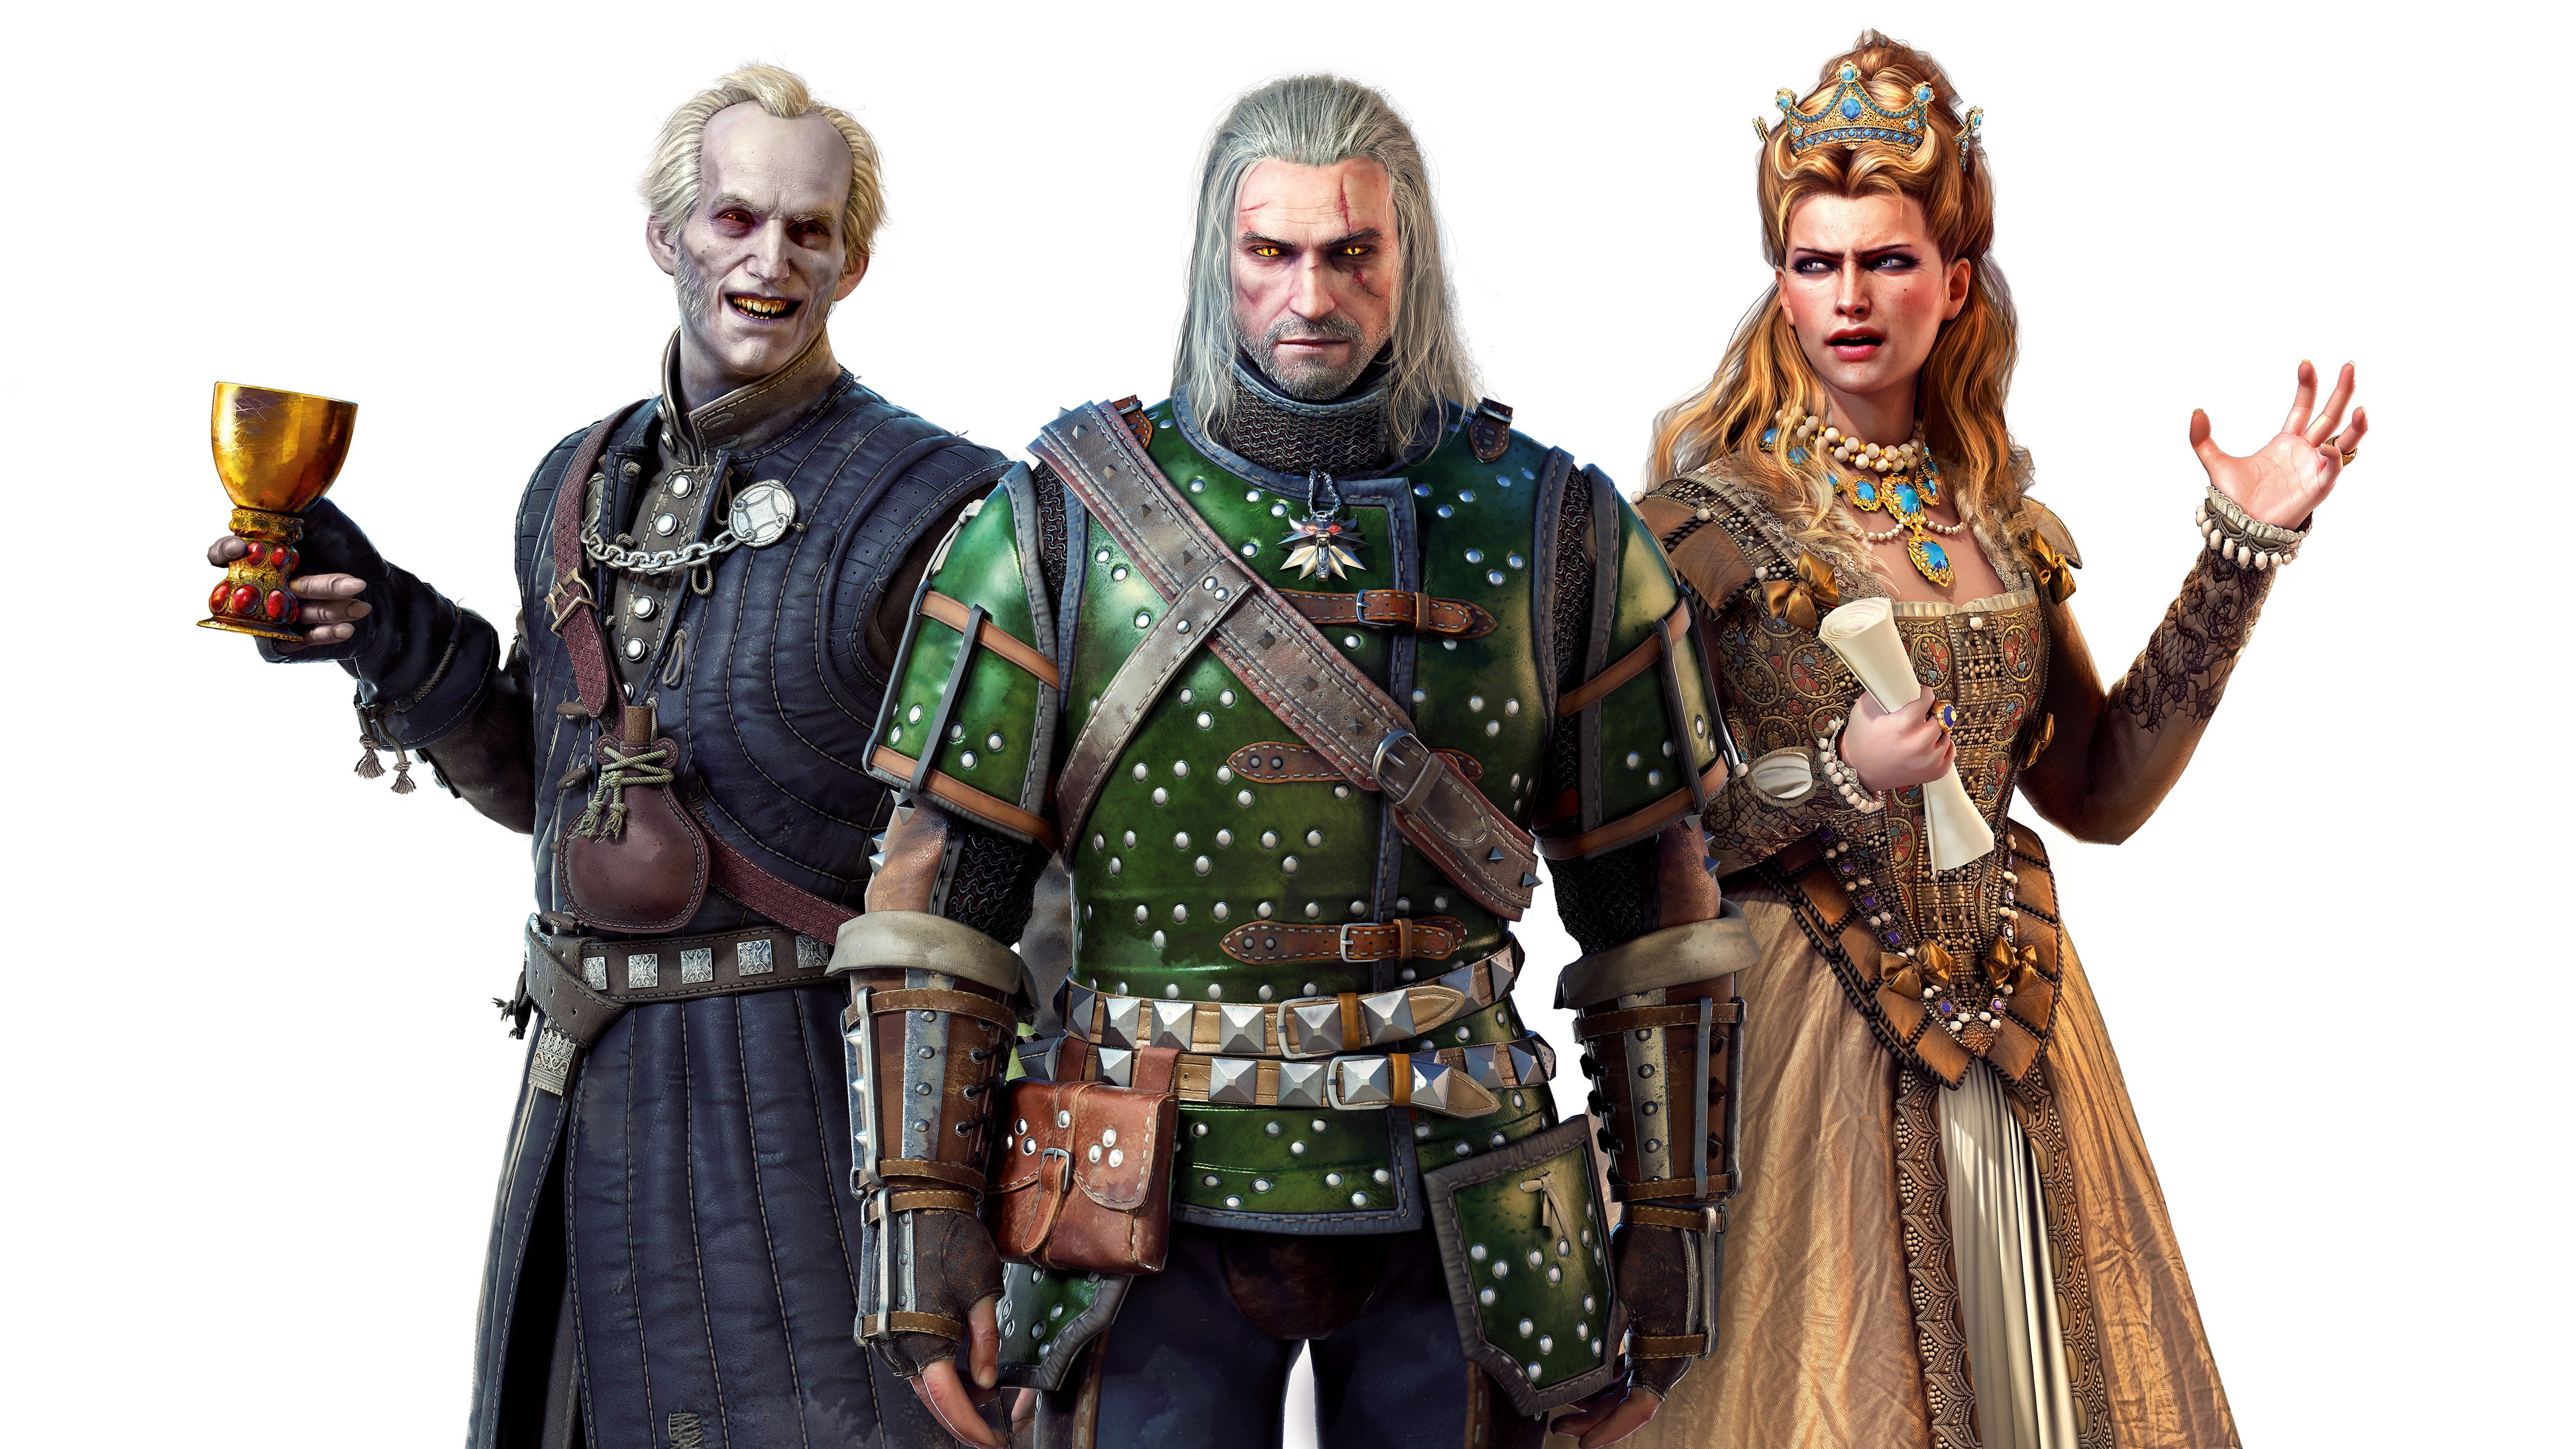 Wallpaper The Witcher 3 Wild Hunt Blood And Wine 3840x2160 Uhd 4k